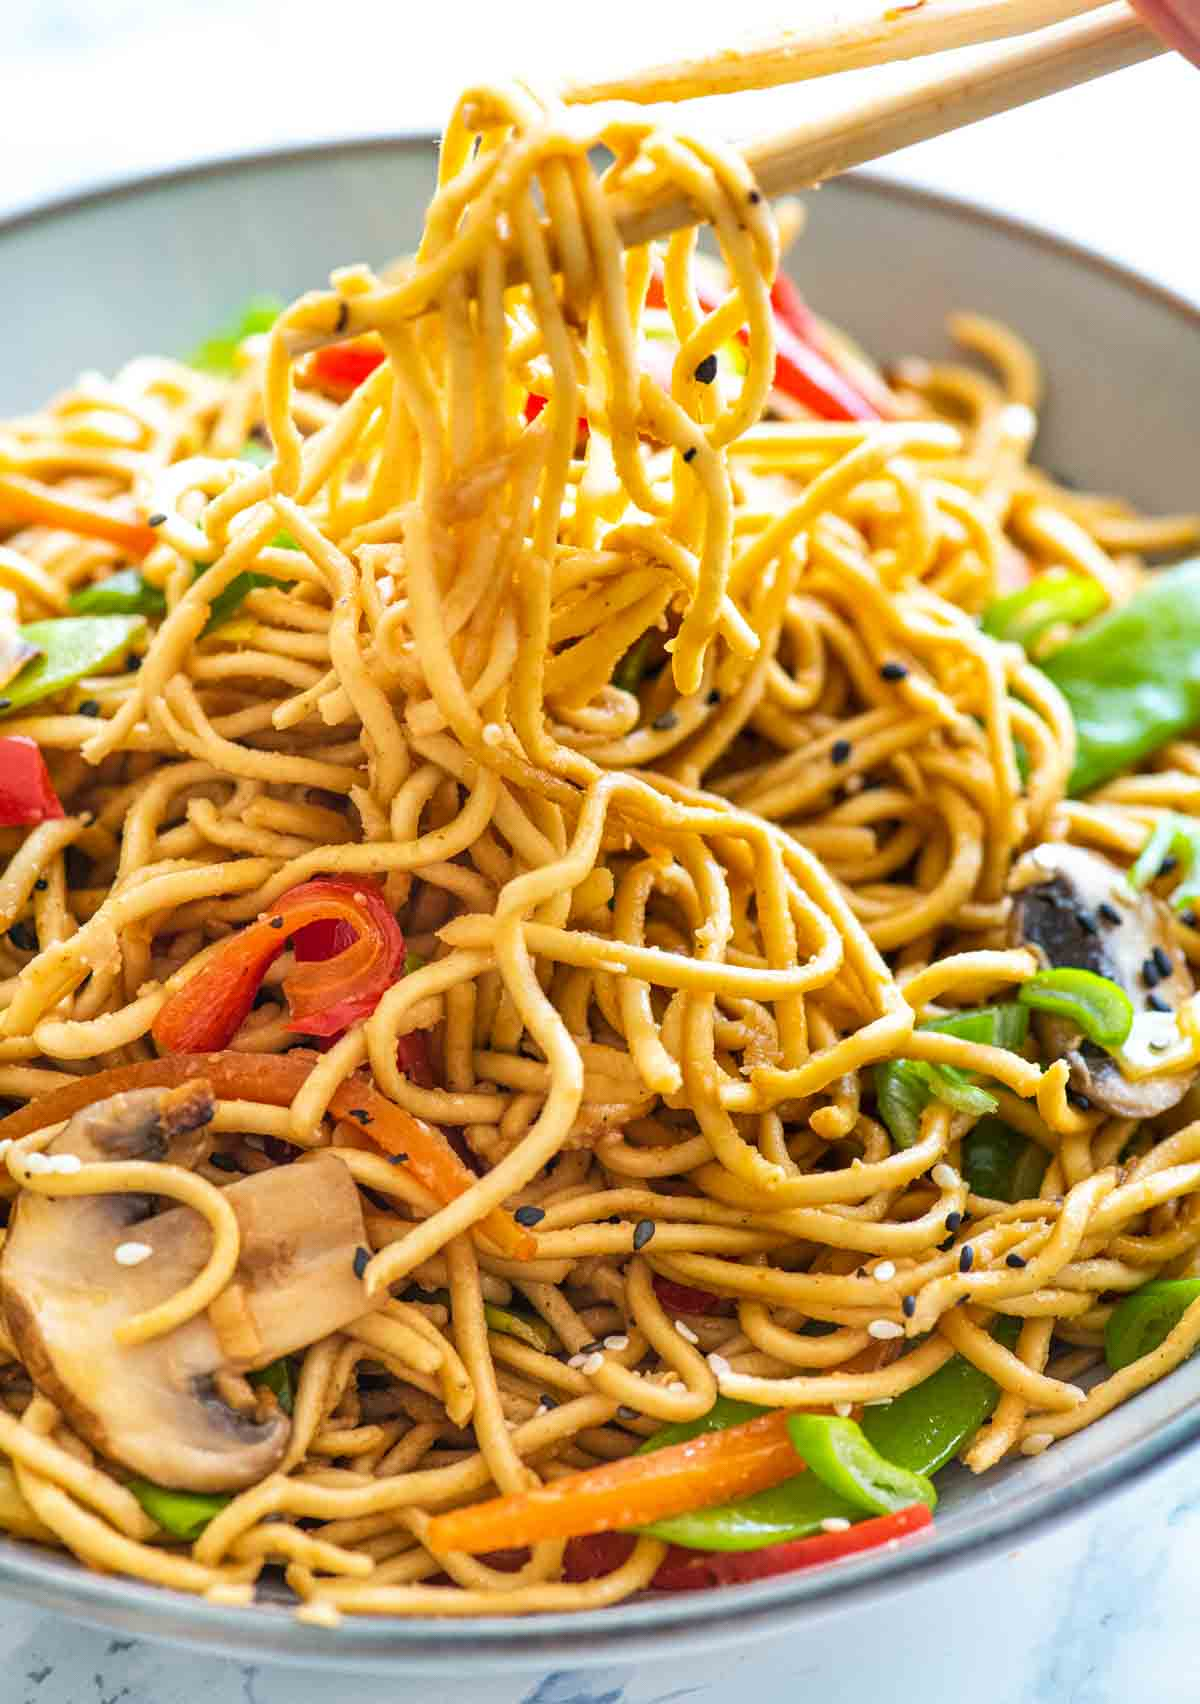 Chopsticks lifting up vegetable chow mein noodles in a bowl